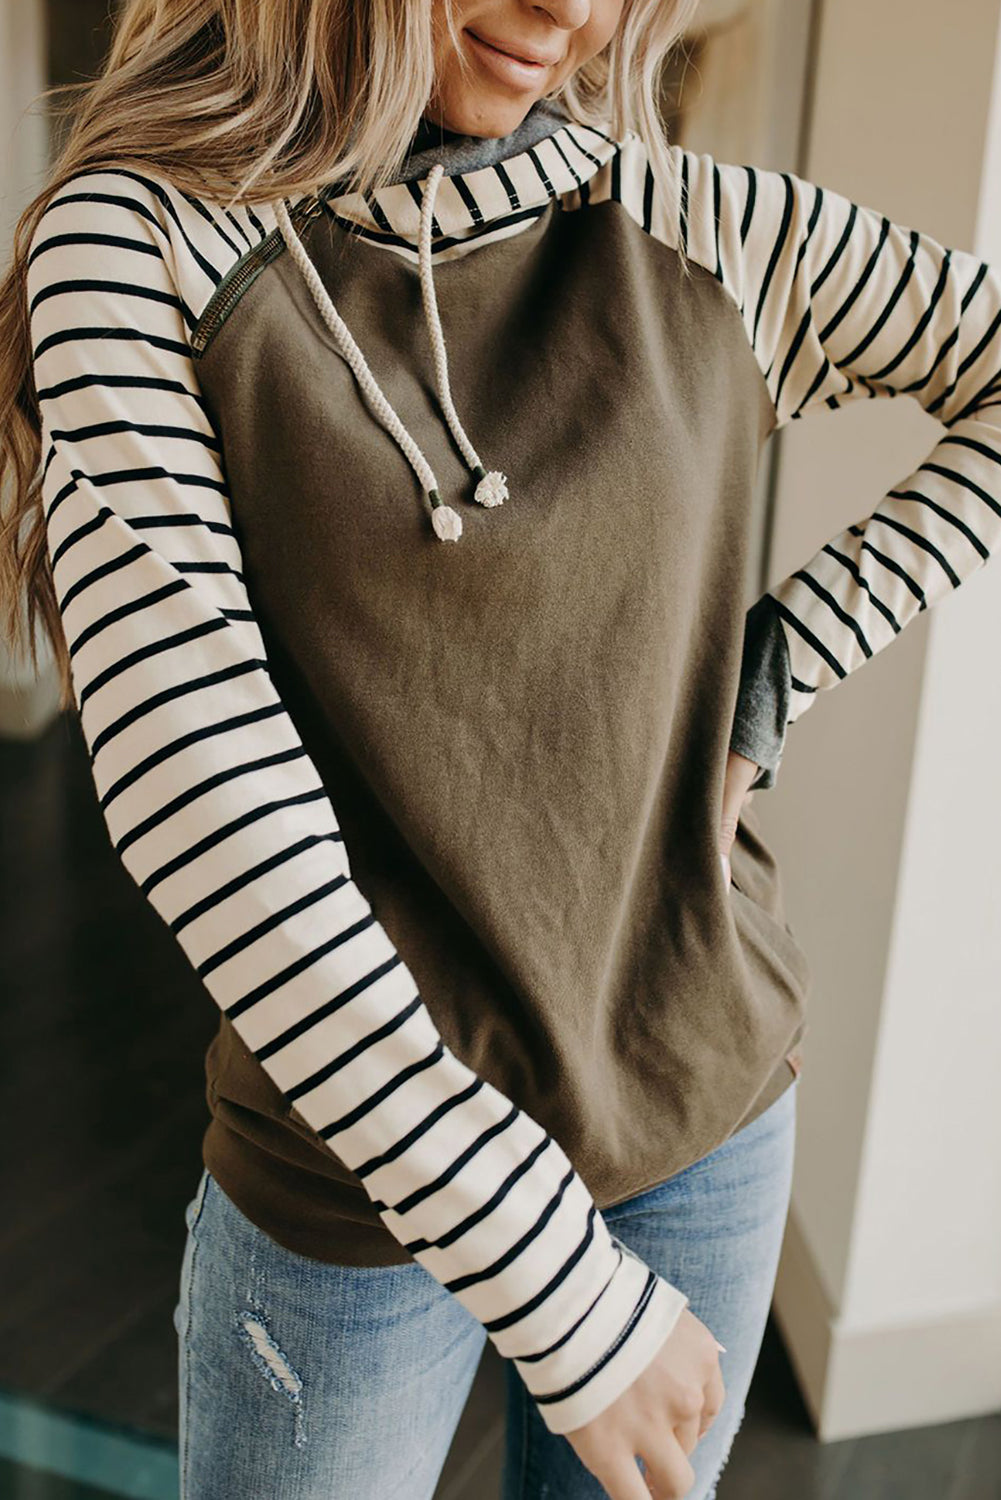 Green Striped Inclined Zipper Drawstring Kangaroo Pocket Hoodie